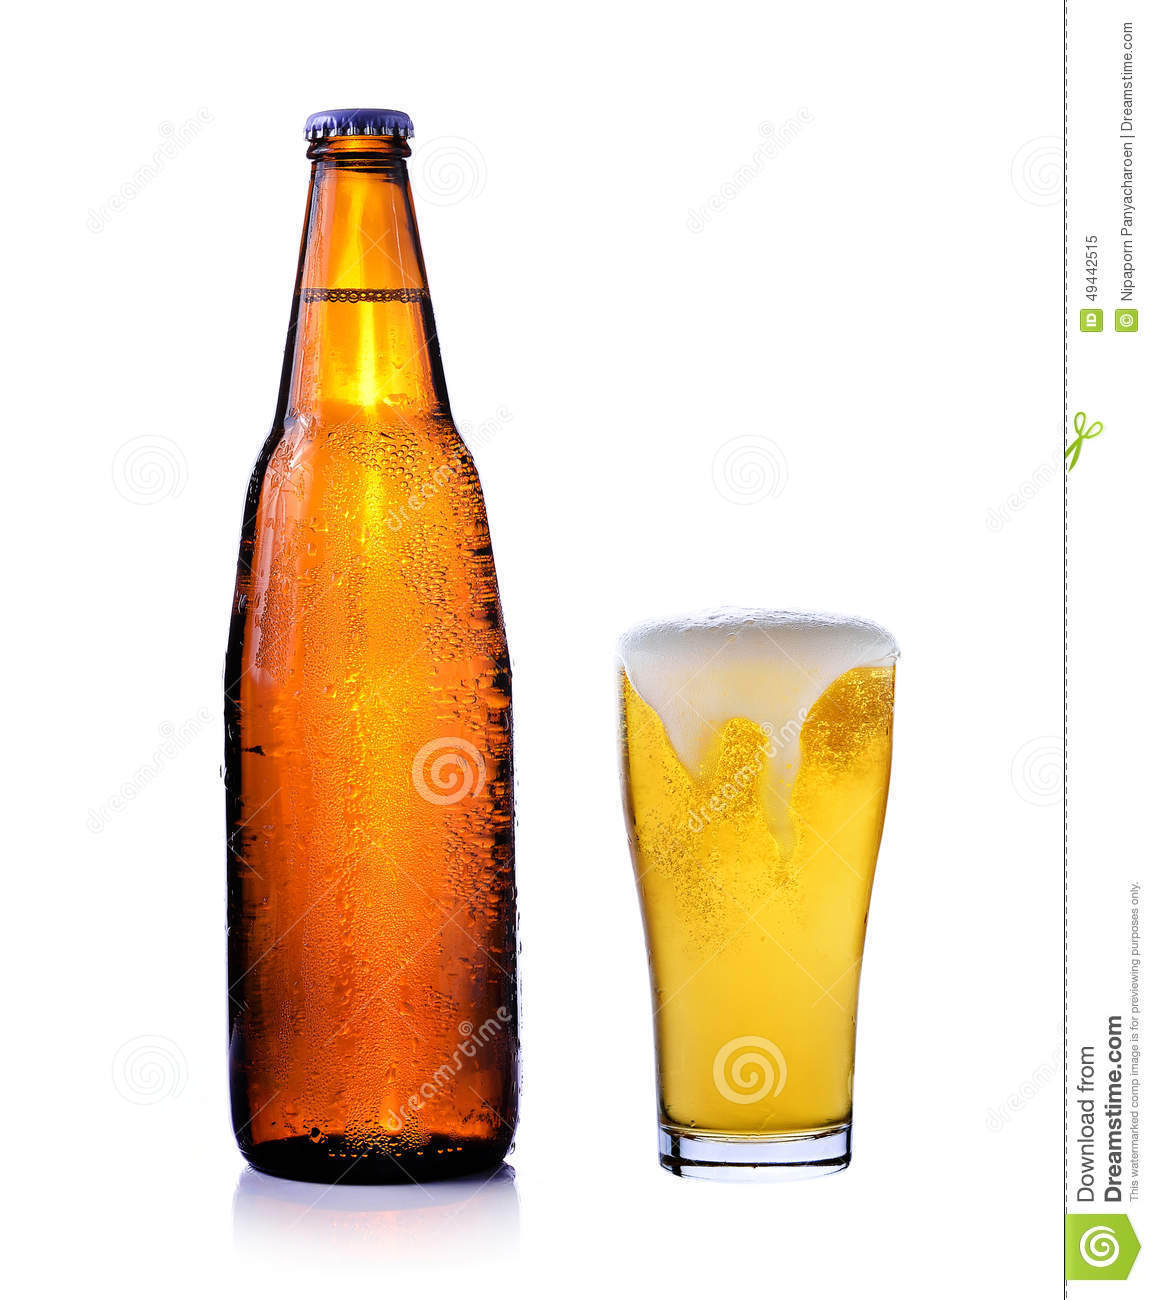 Bottle of beer and glass of beer